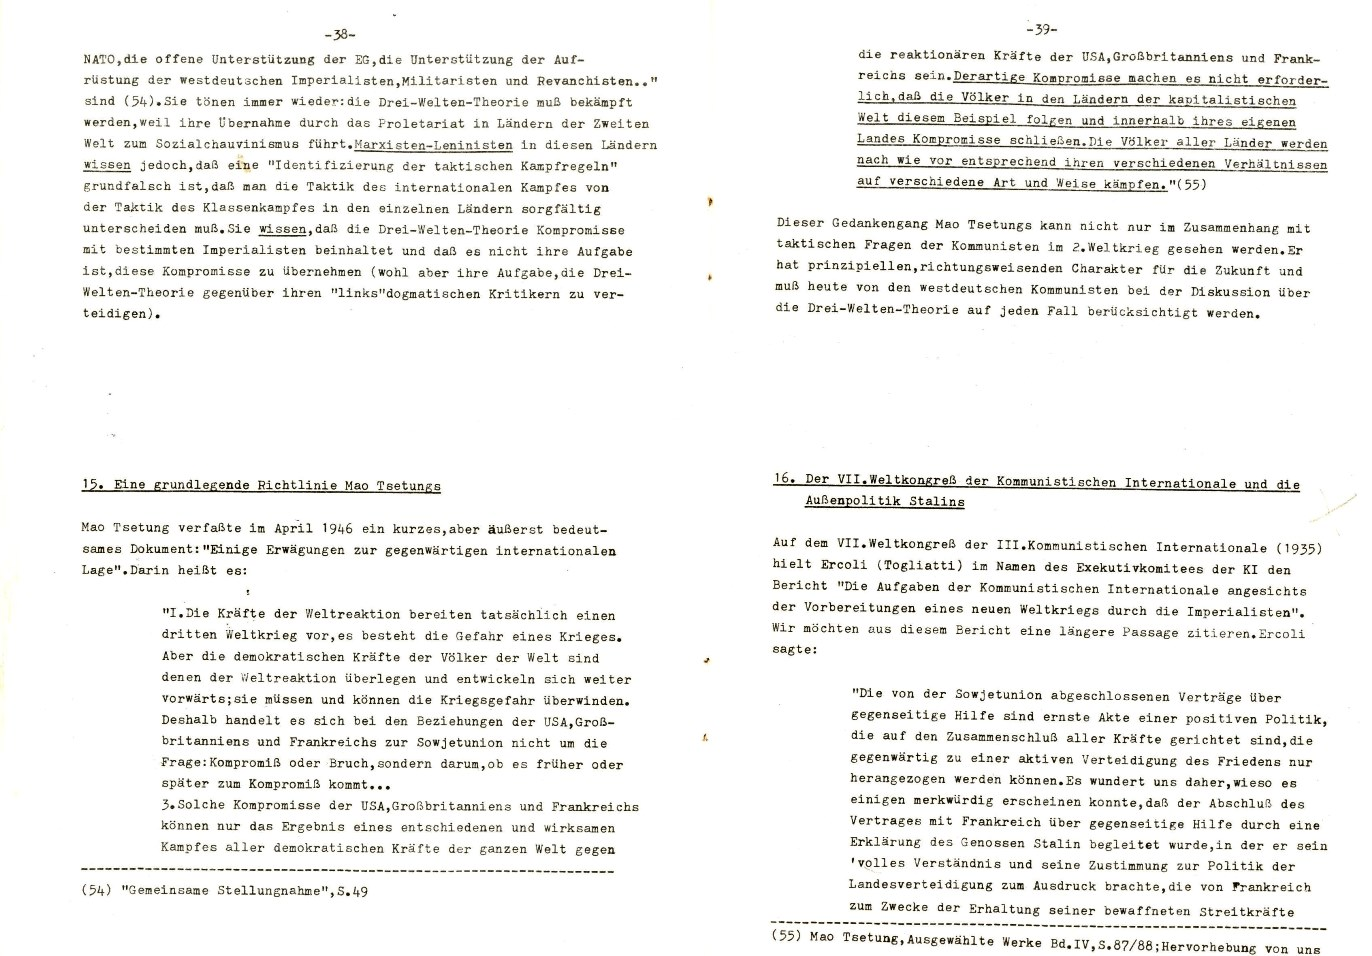 Muenchen_Kampf_dem_Revisionismus_1978_04_05_21